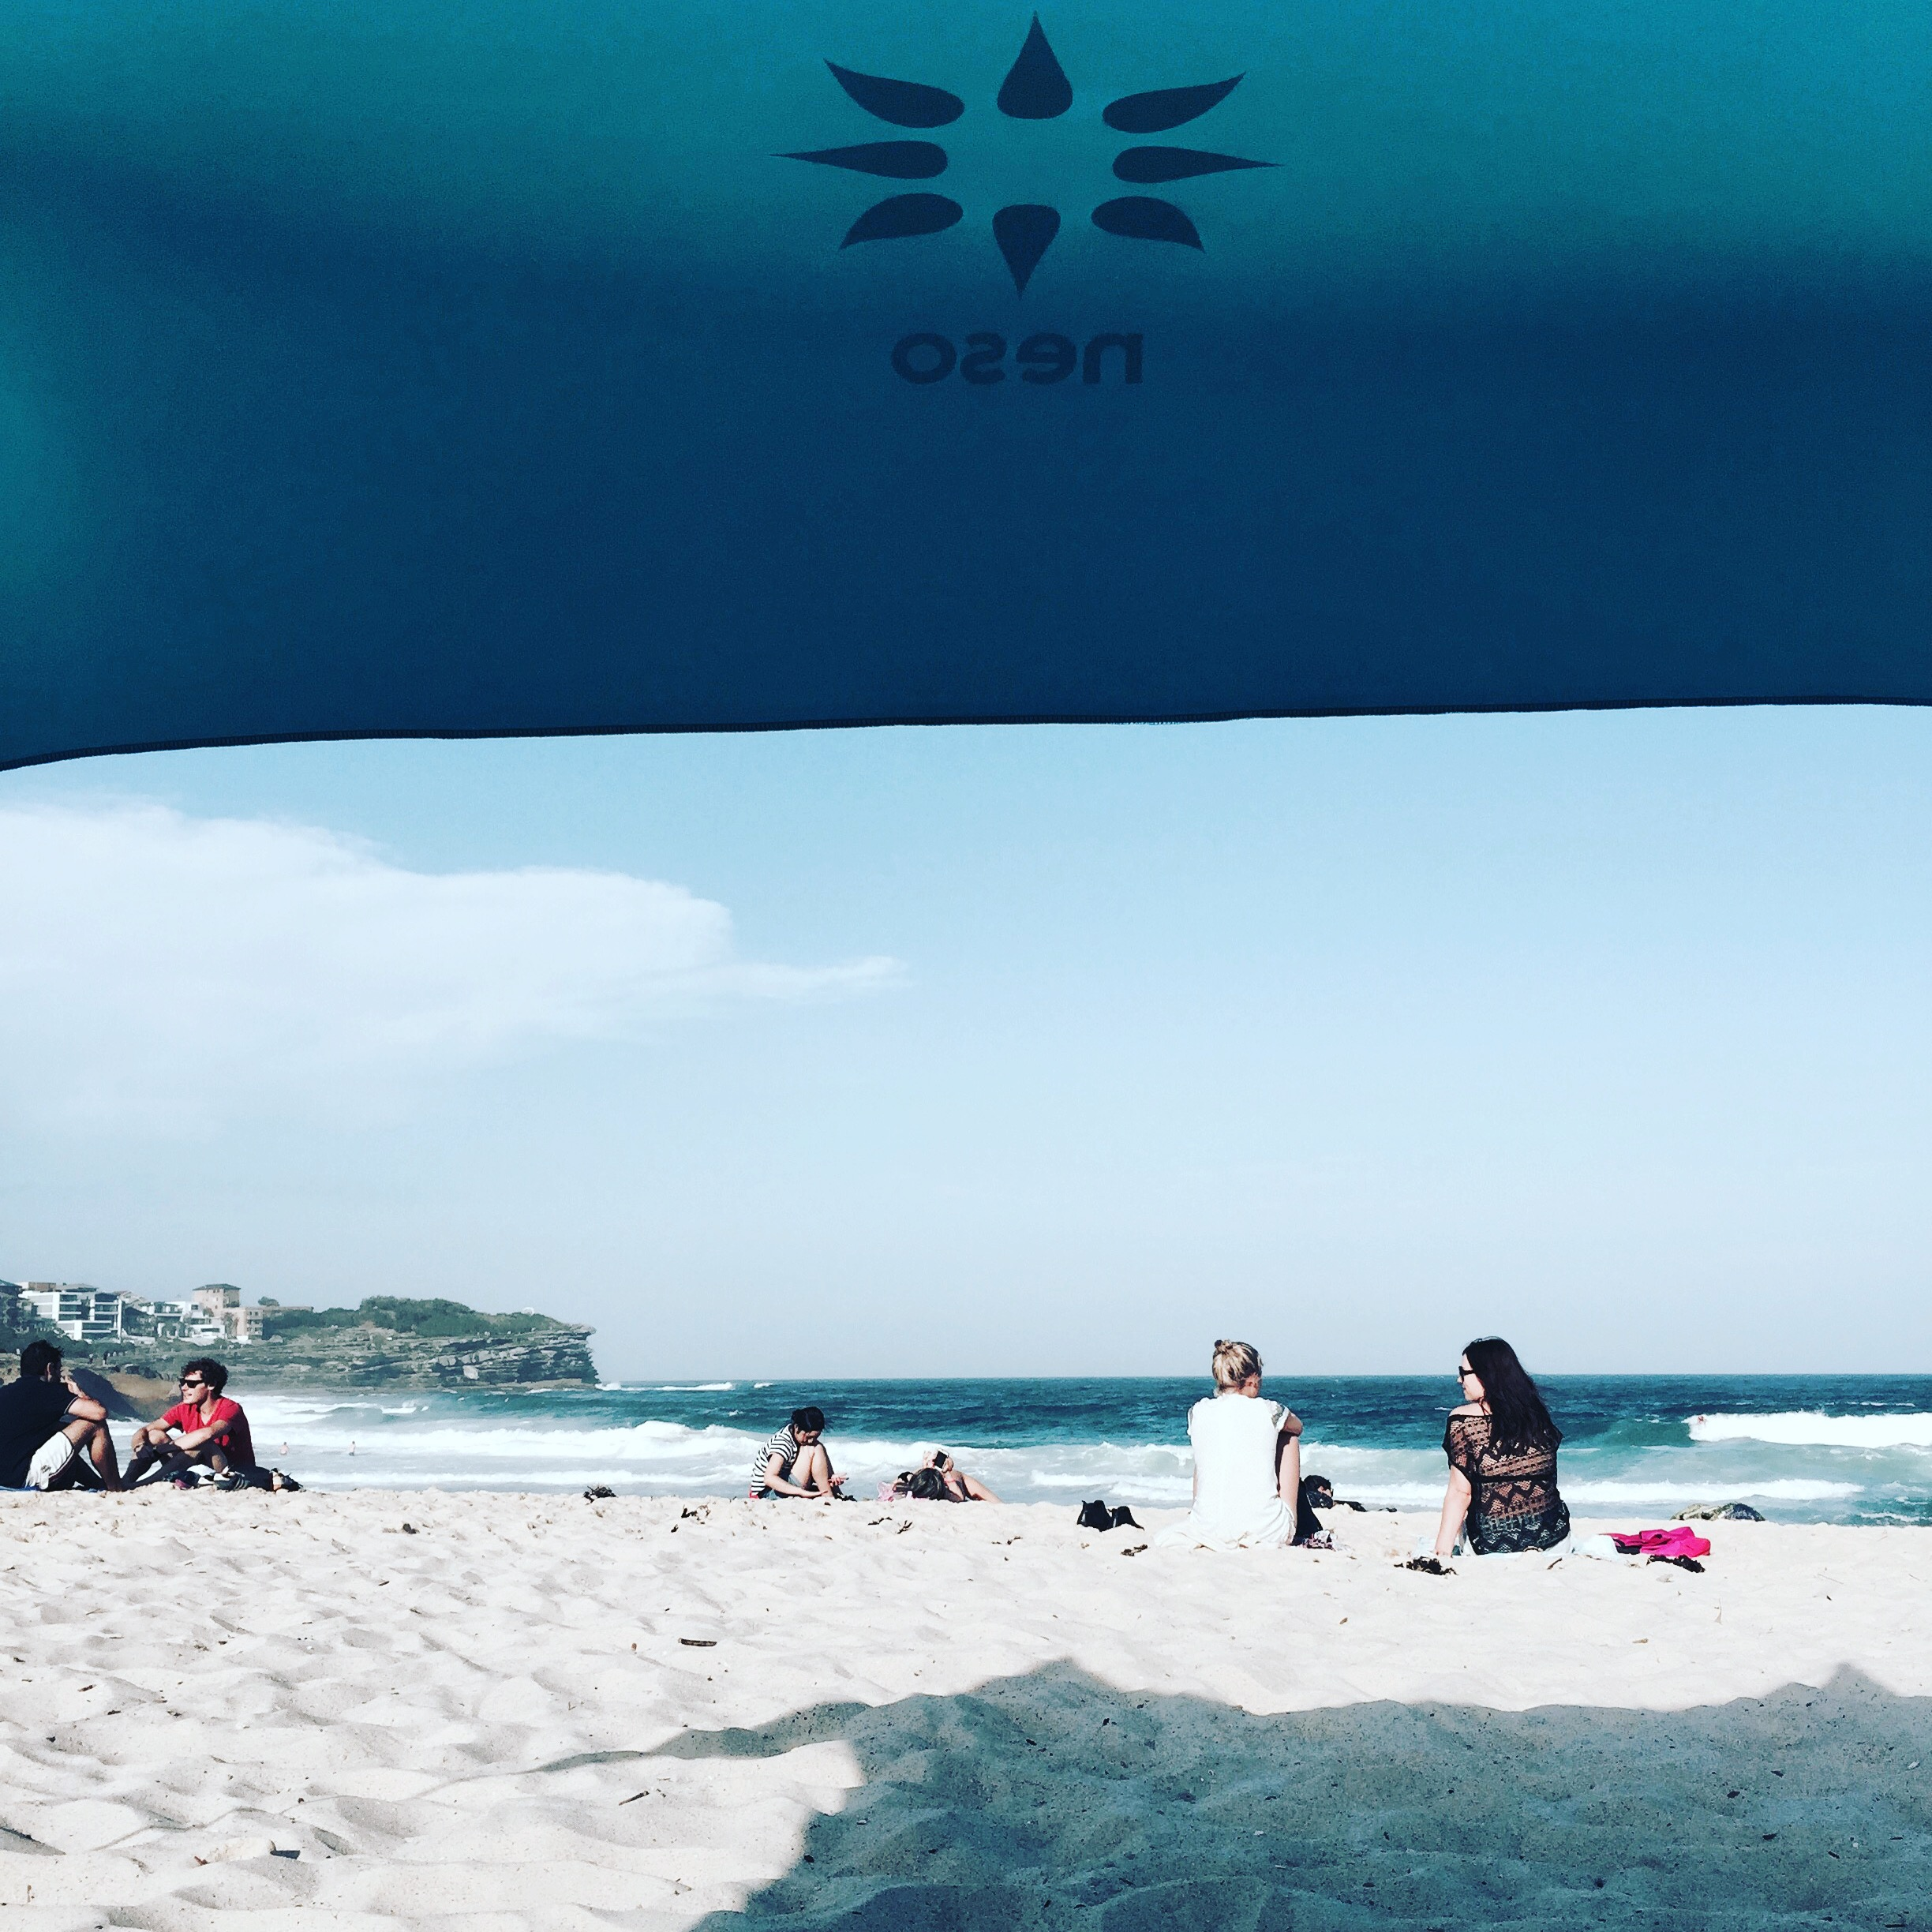 neso under & All I want for Christmas is a beach shade tent | Iu0027d swim that